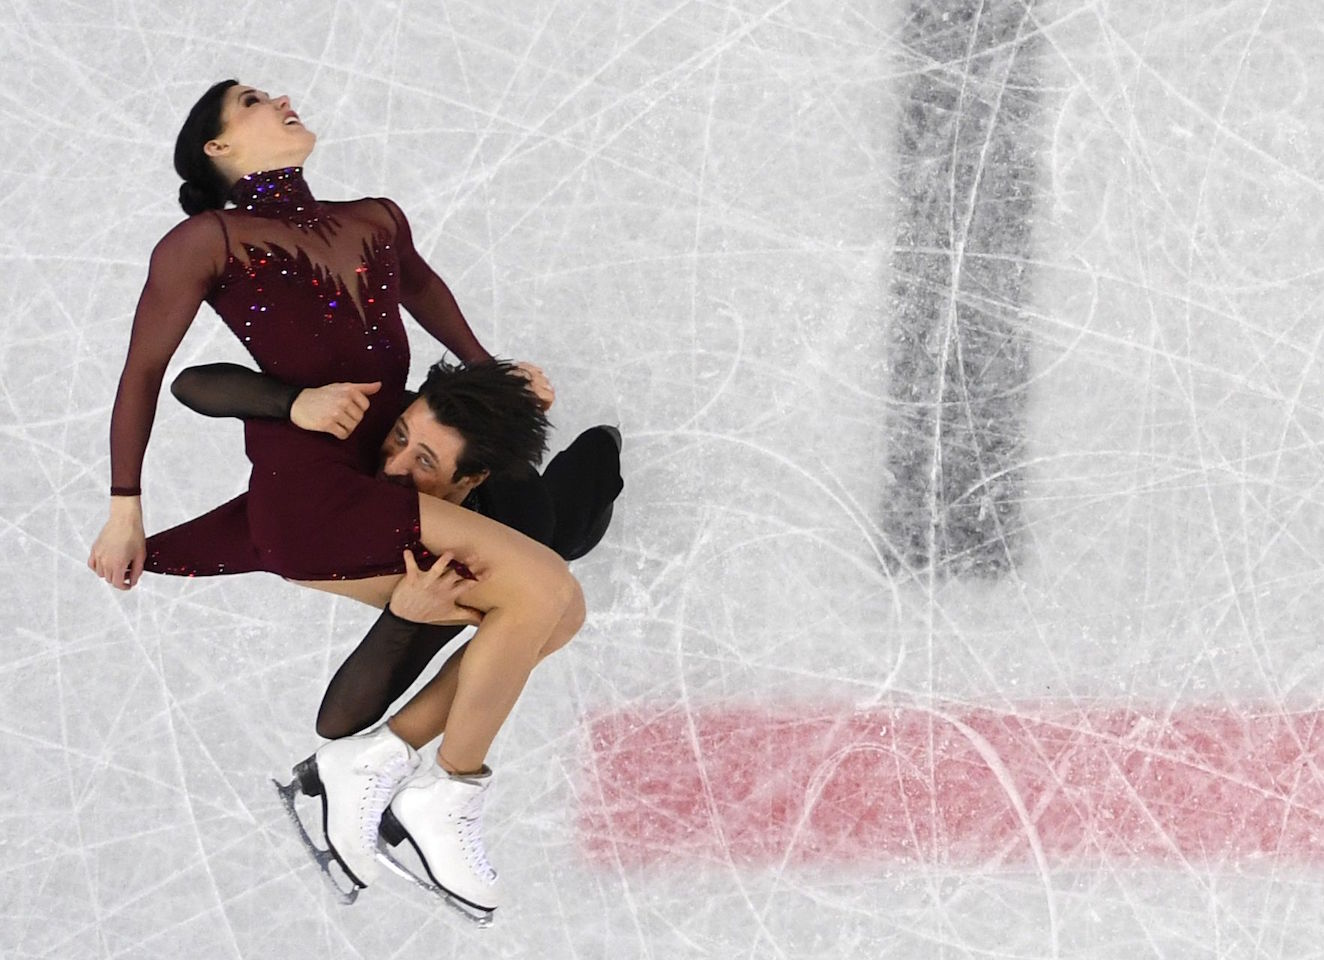 Tessa and scott not dating